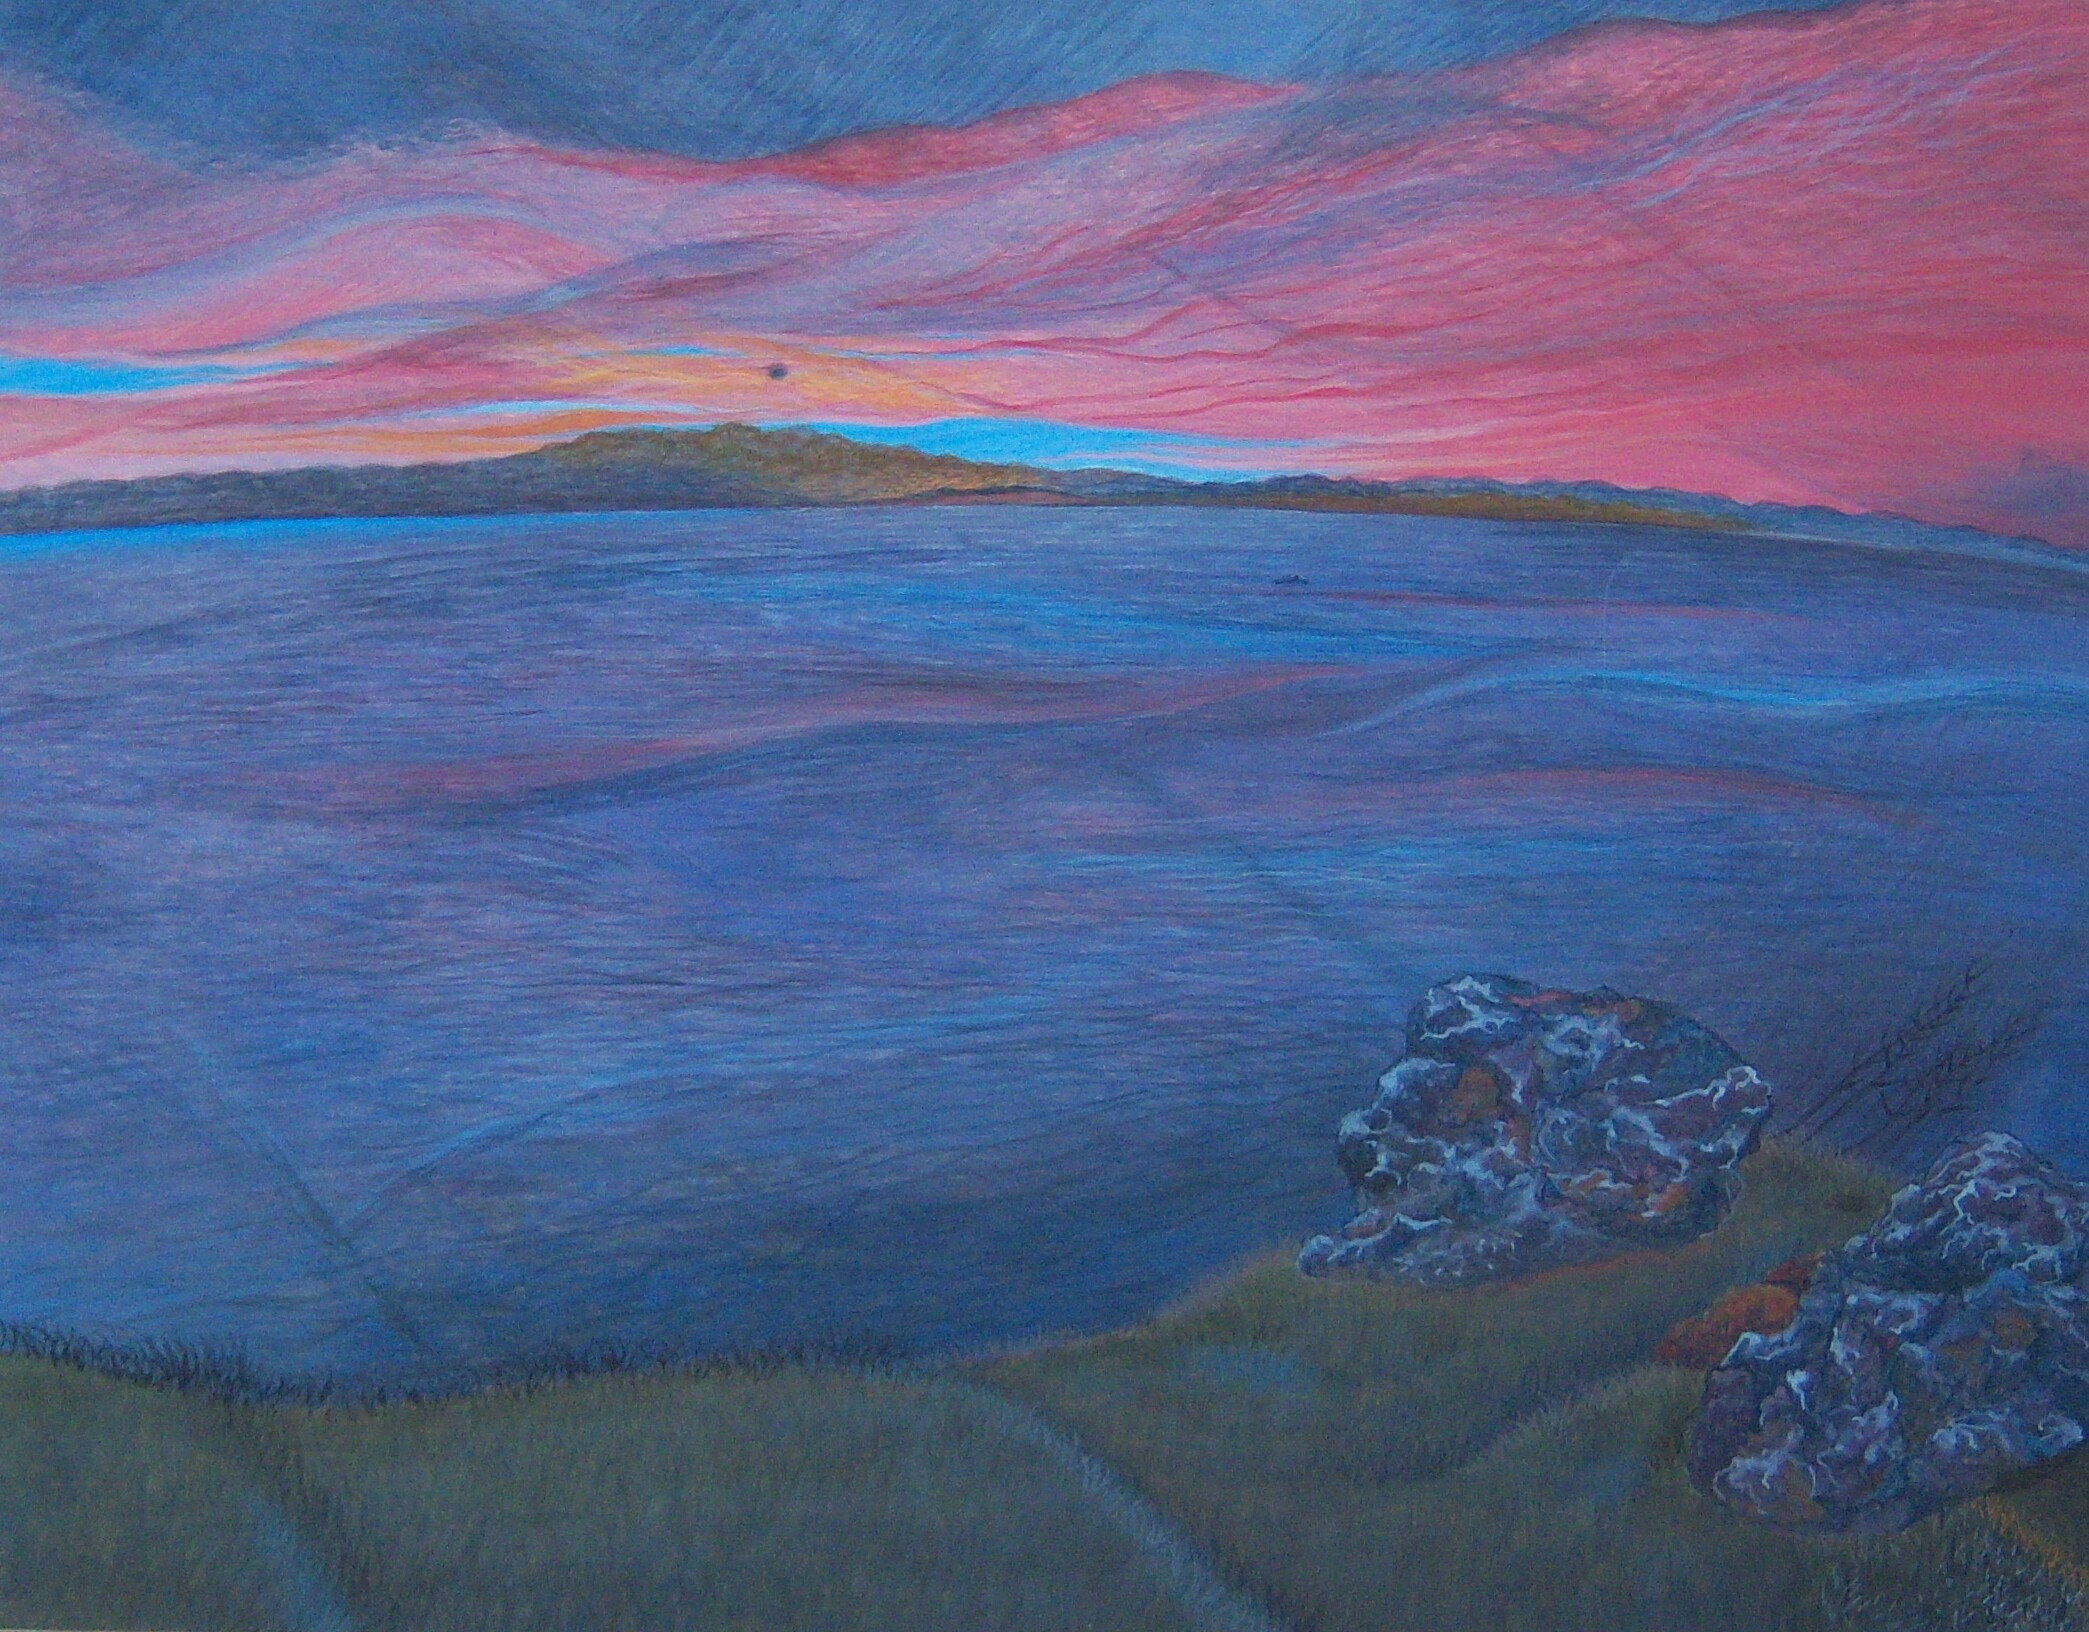 Light In Sight, e.t. on panel, 11 x 14, 2003